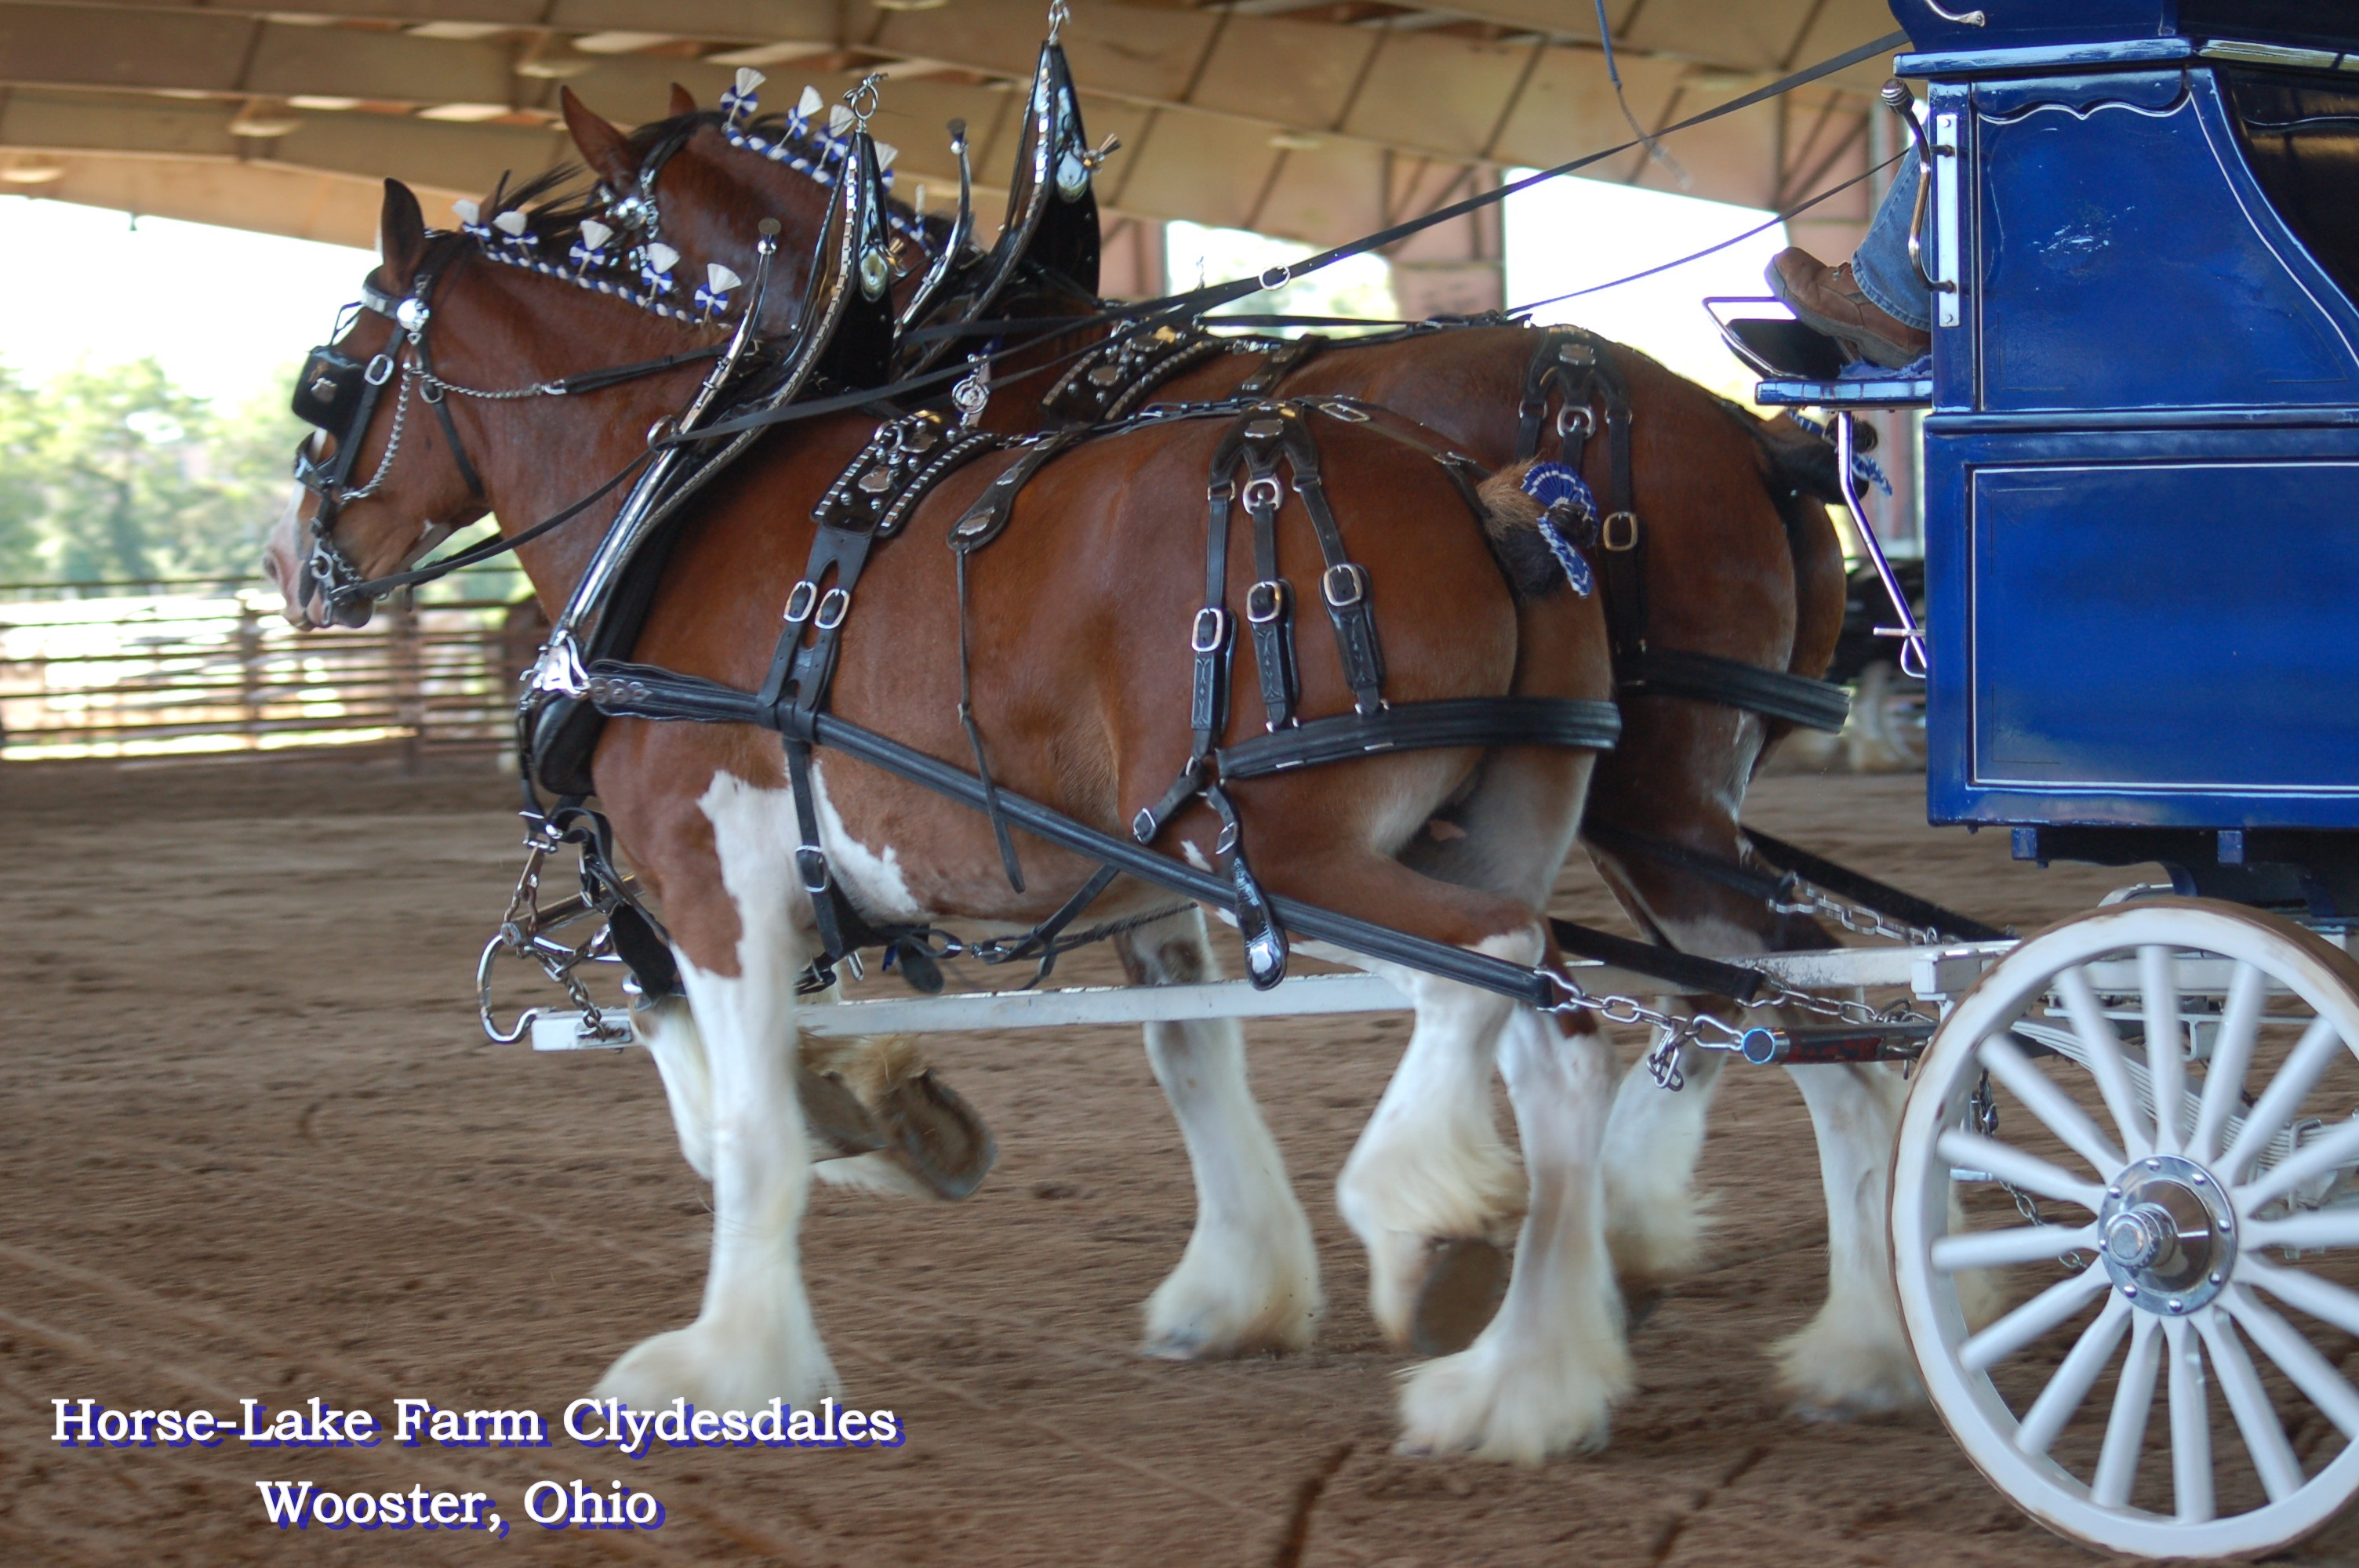 HLF Clydesdales